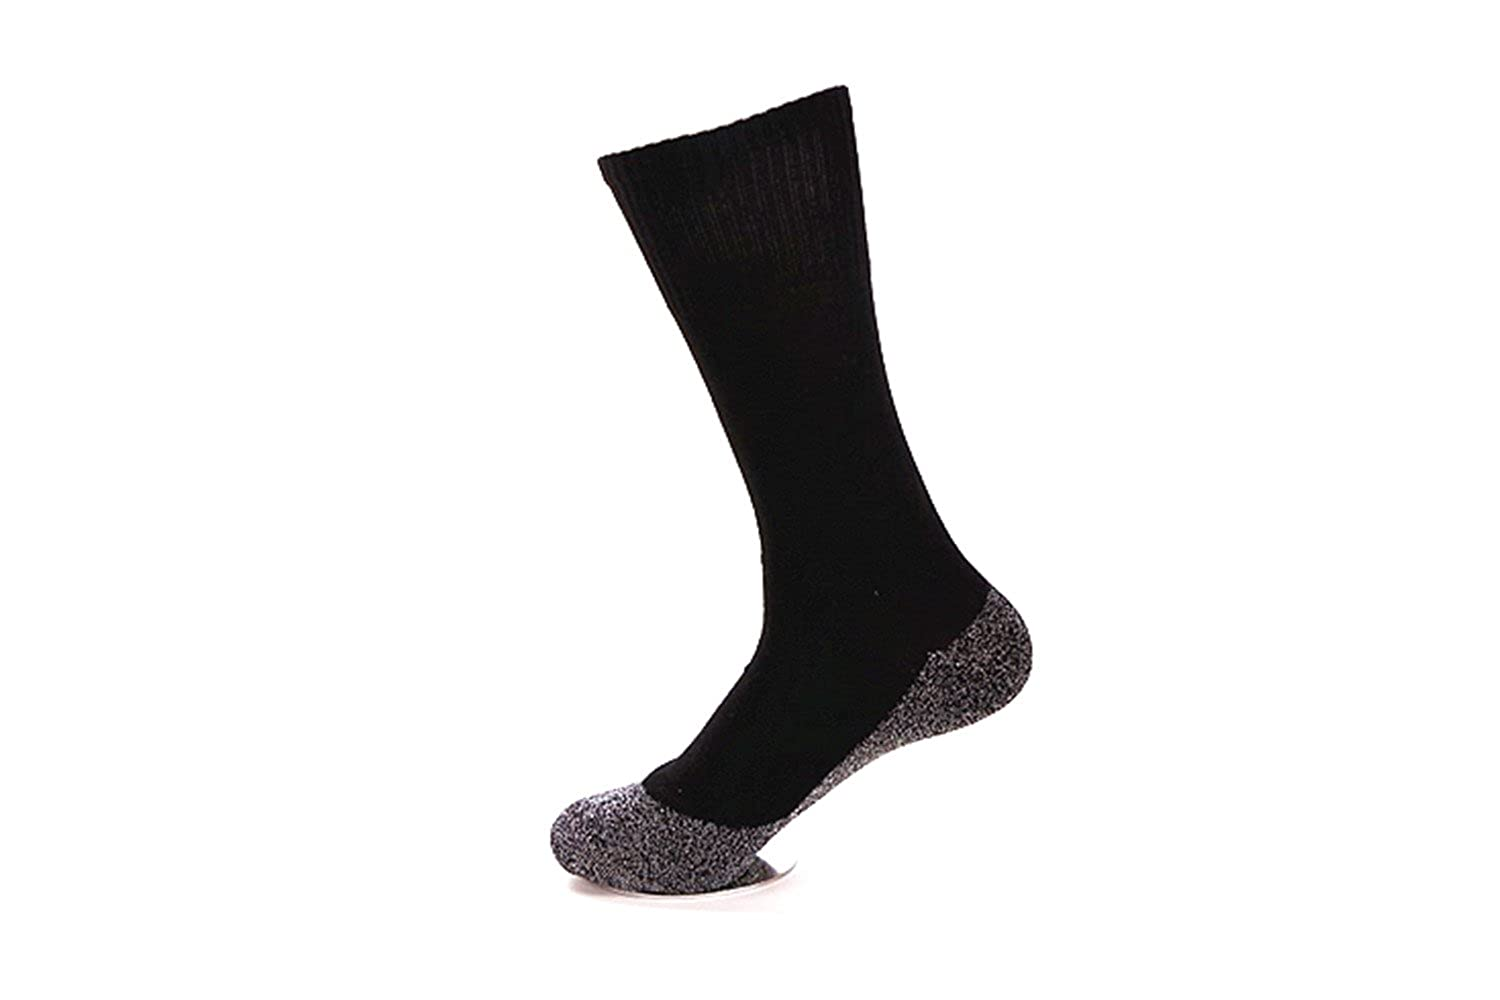 35 Degrees Ultimate Comfort Socks 3 Pairs in Black  Aluminized Fibers Supersoft Socks